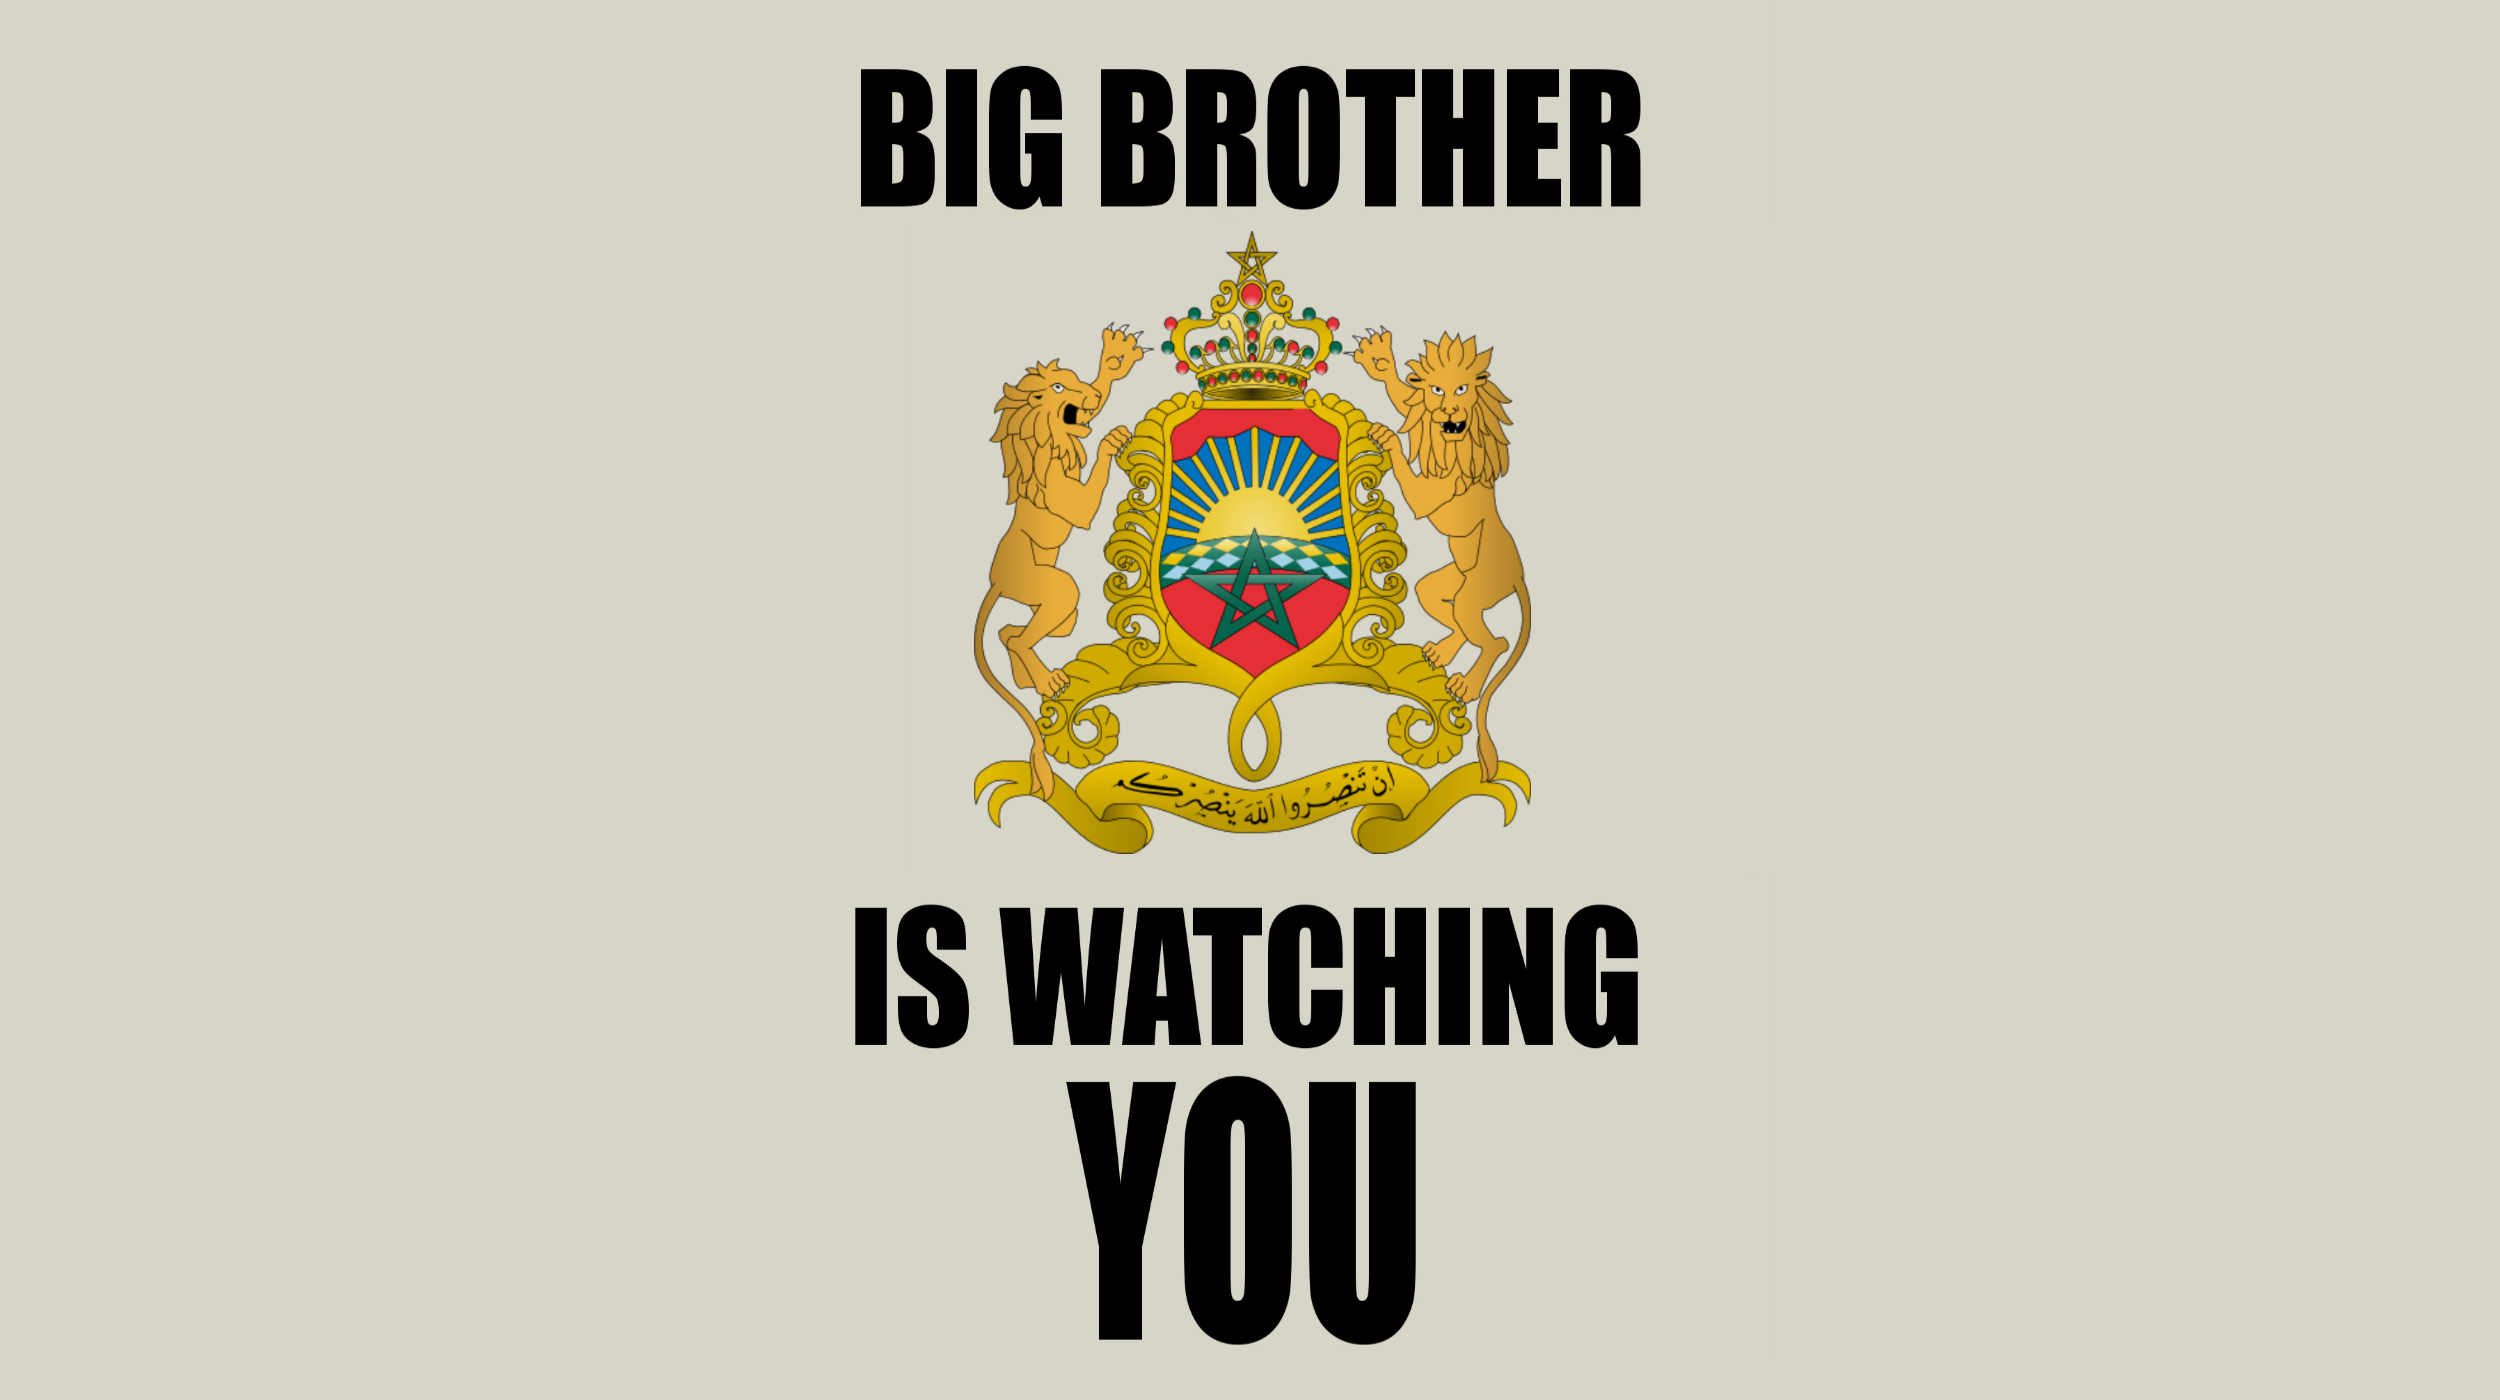 The Moroccan Big Brother is watching you